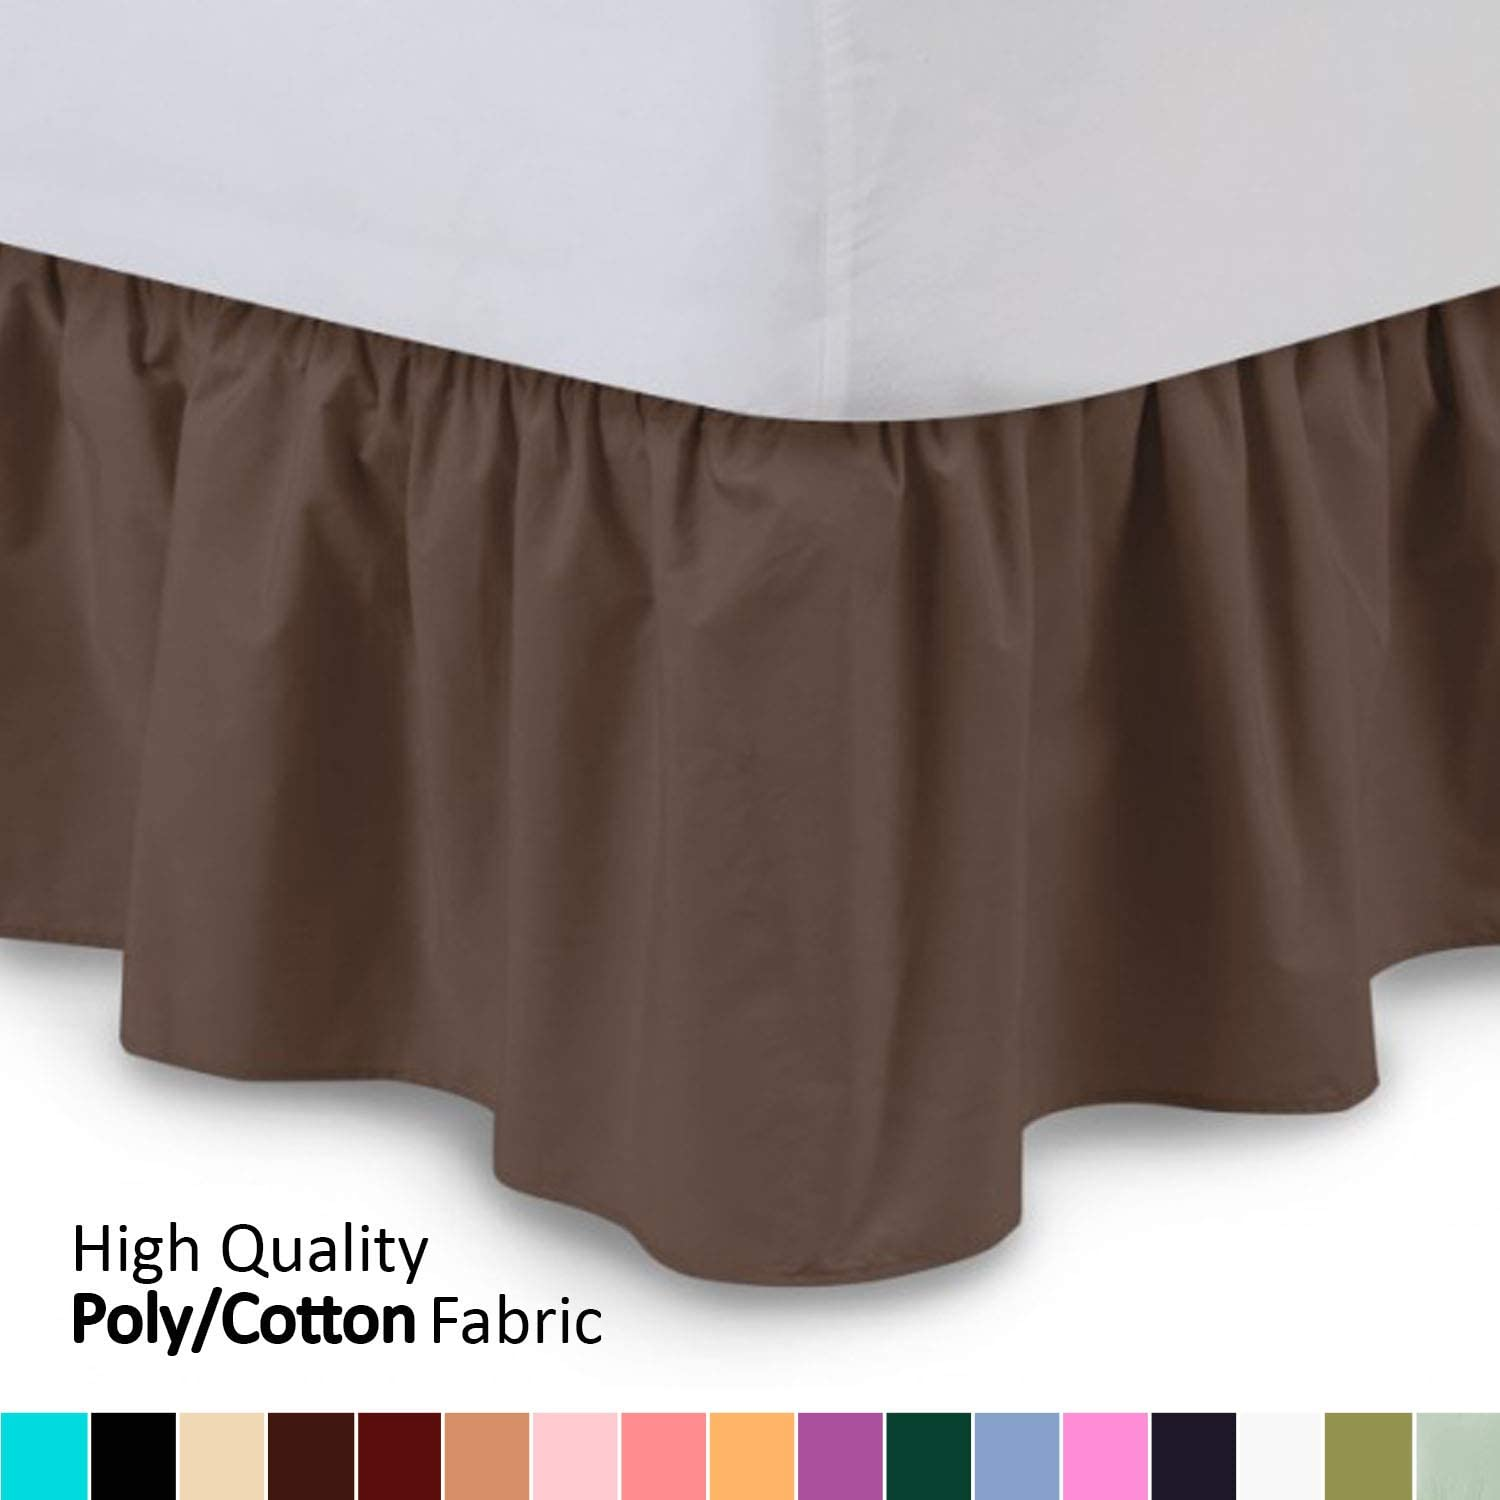 Shop Bedding Ruffled Bed Skirt (Twin XL, Brown) 14 Inch Drop Dust Ruffle with Platform, Wrinkle and Fade Resistant - by Harmony Lane (Available in All Bed Sizes and 16 Colors)